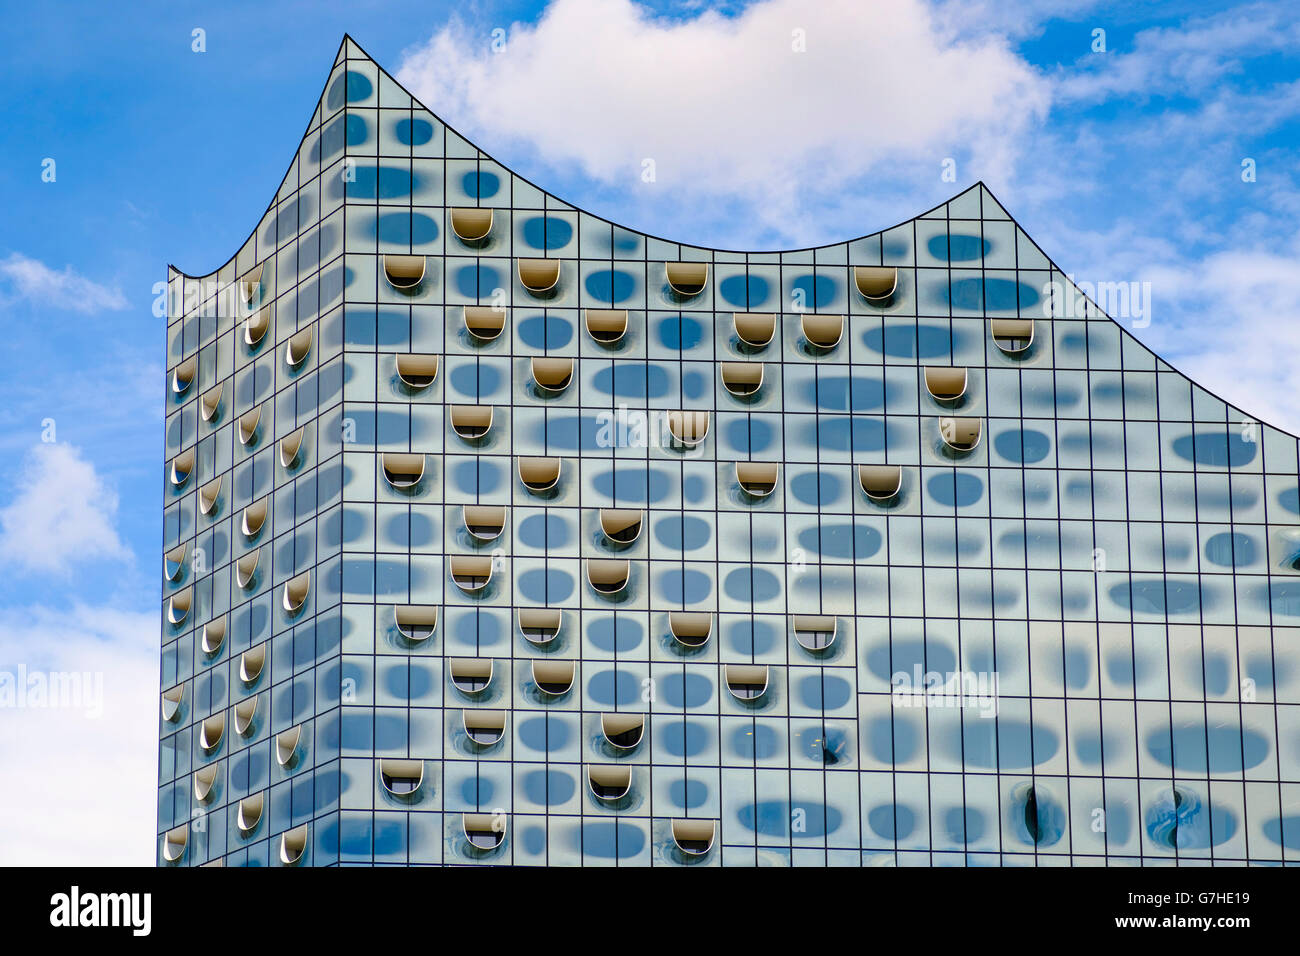 View of abstract glass facade new Elbphilharmonie concert hall nearing completion on River Elbe in Hamburg Germany - Stock Image